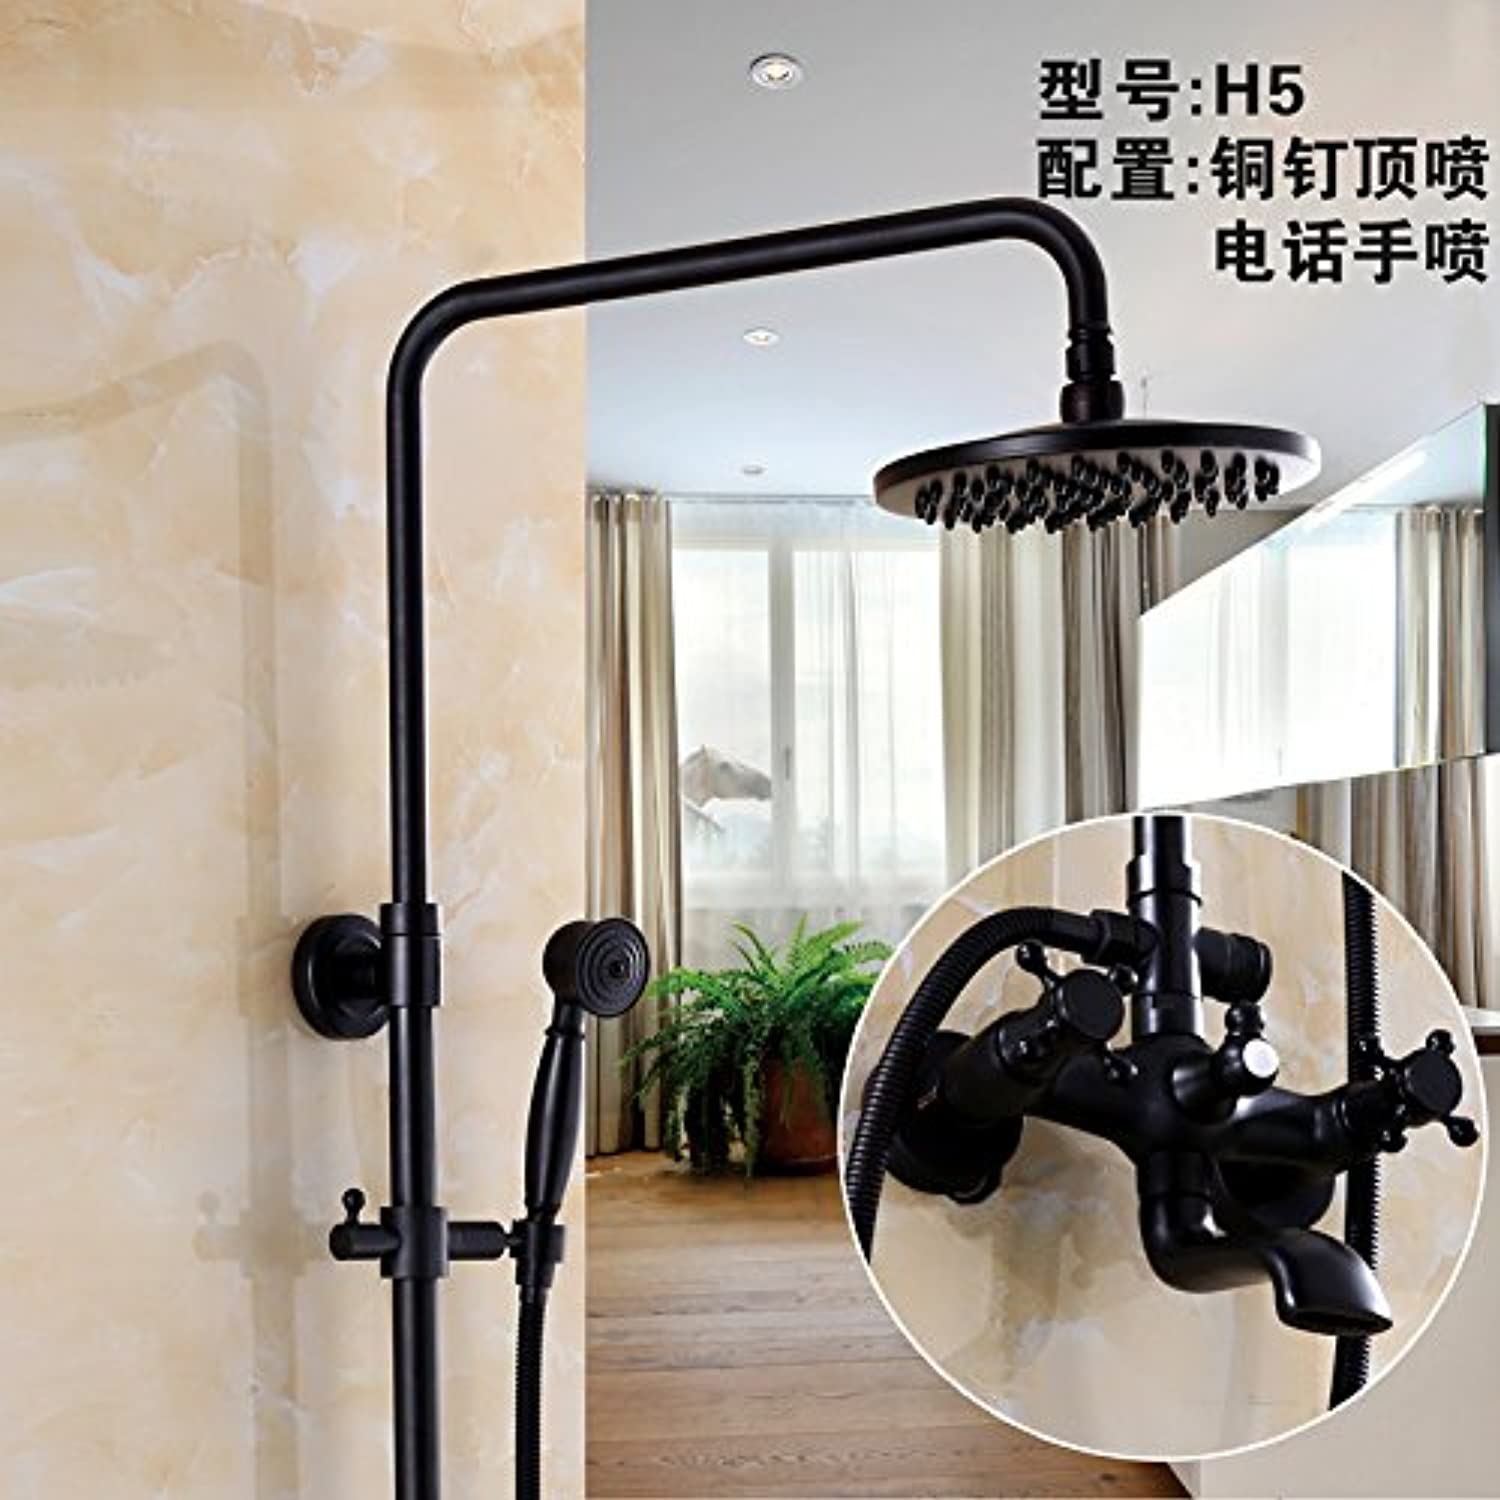 Hlluya Professional Sink Mixer Tap Kitchen Faucet The pressurization full copper bathroom black shower faucet set antique shower faucet can lift redary,H5